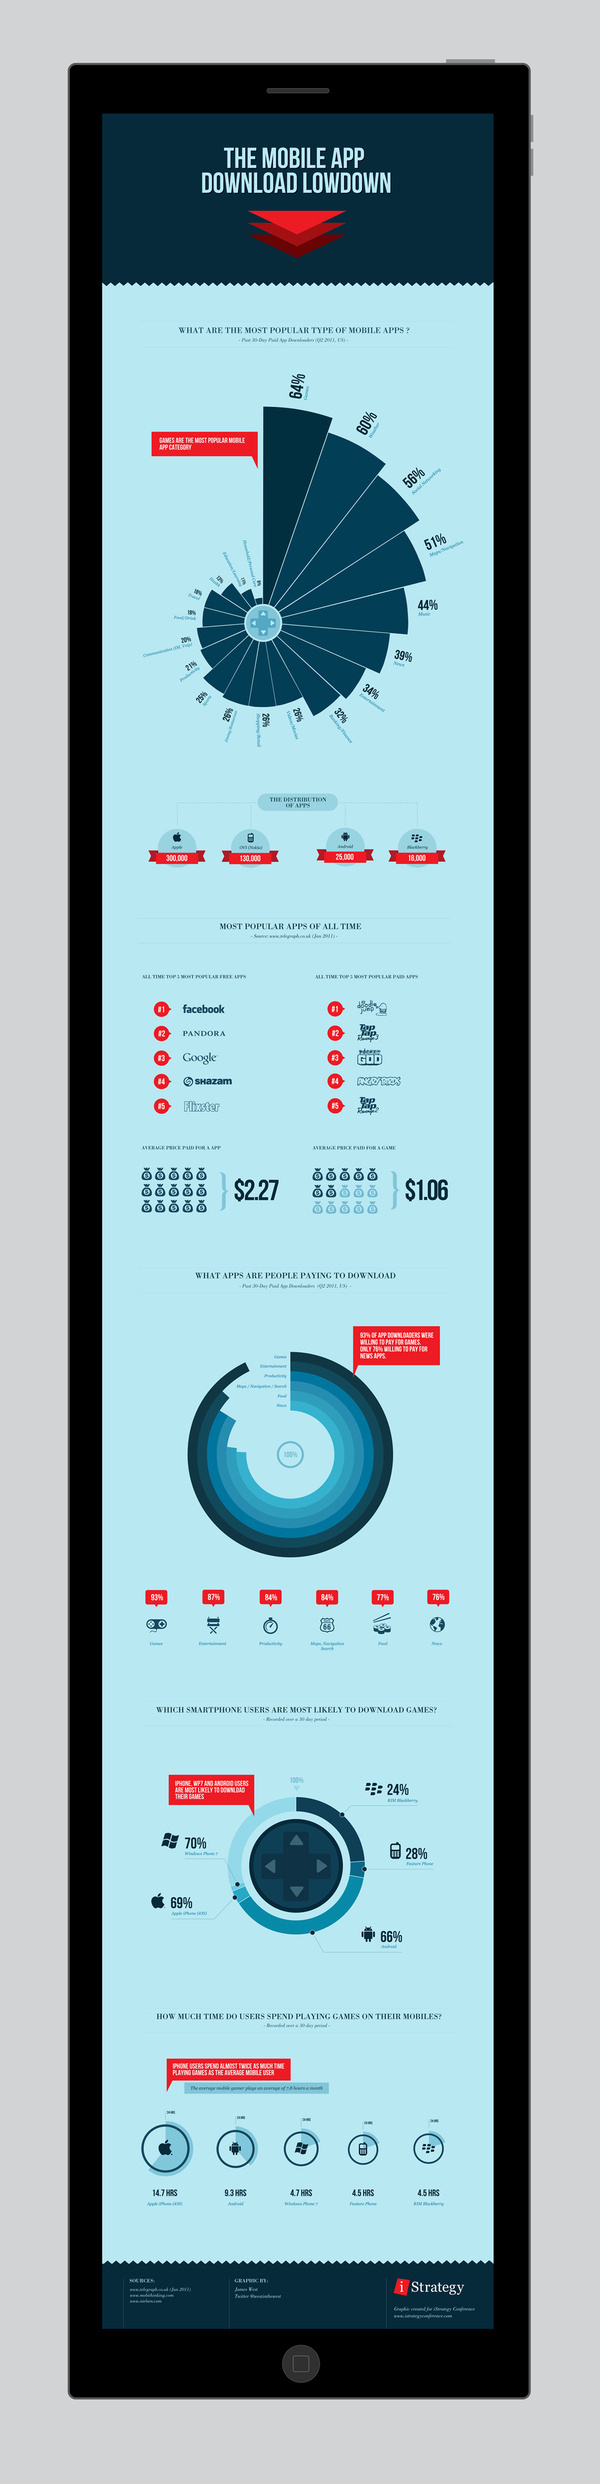 The mobile app download lowdown - INFOGRAPHIC